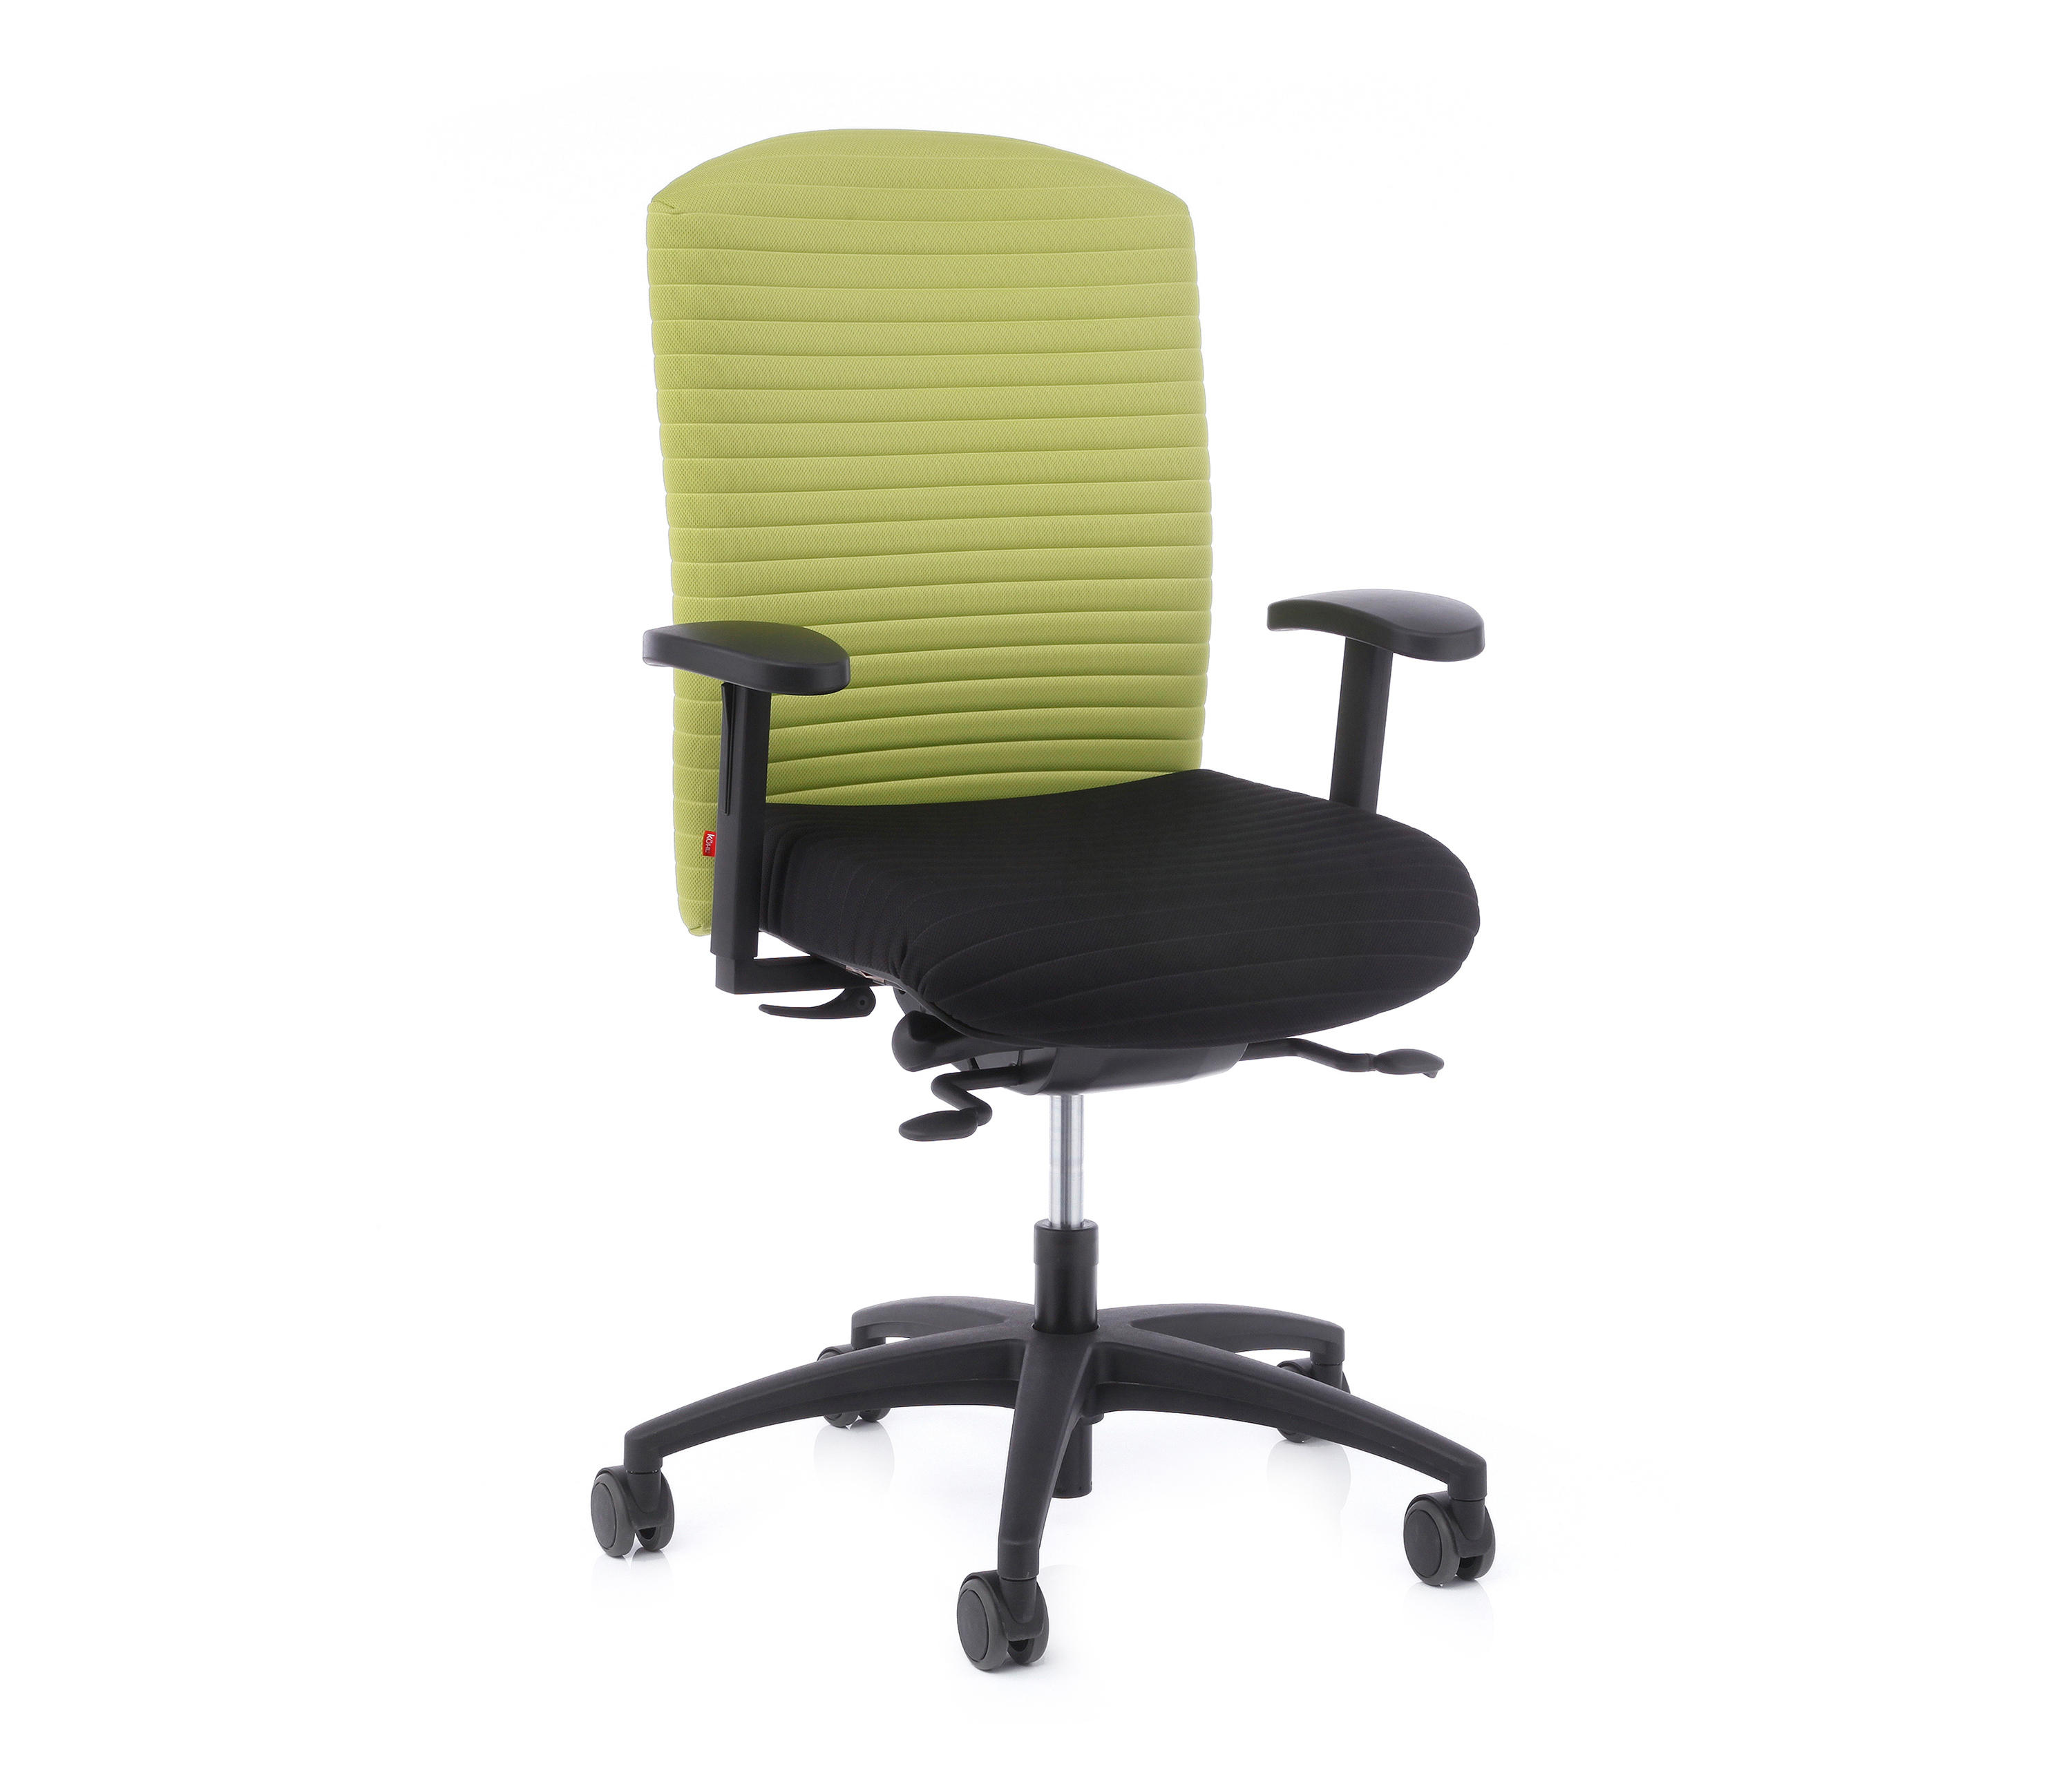 Selleo 1800 chaises de travail de k hl architonic for Chaise de travail